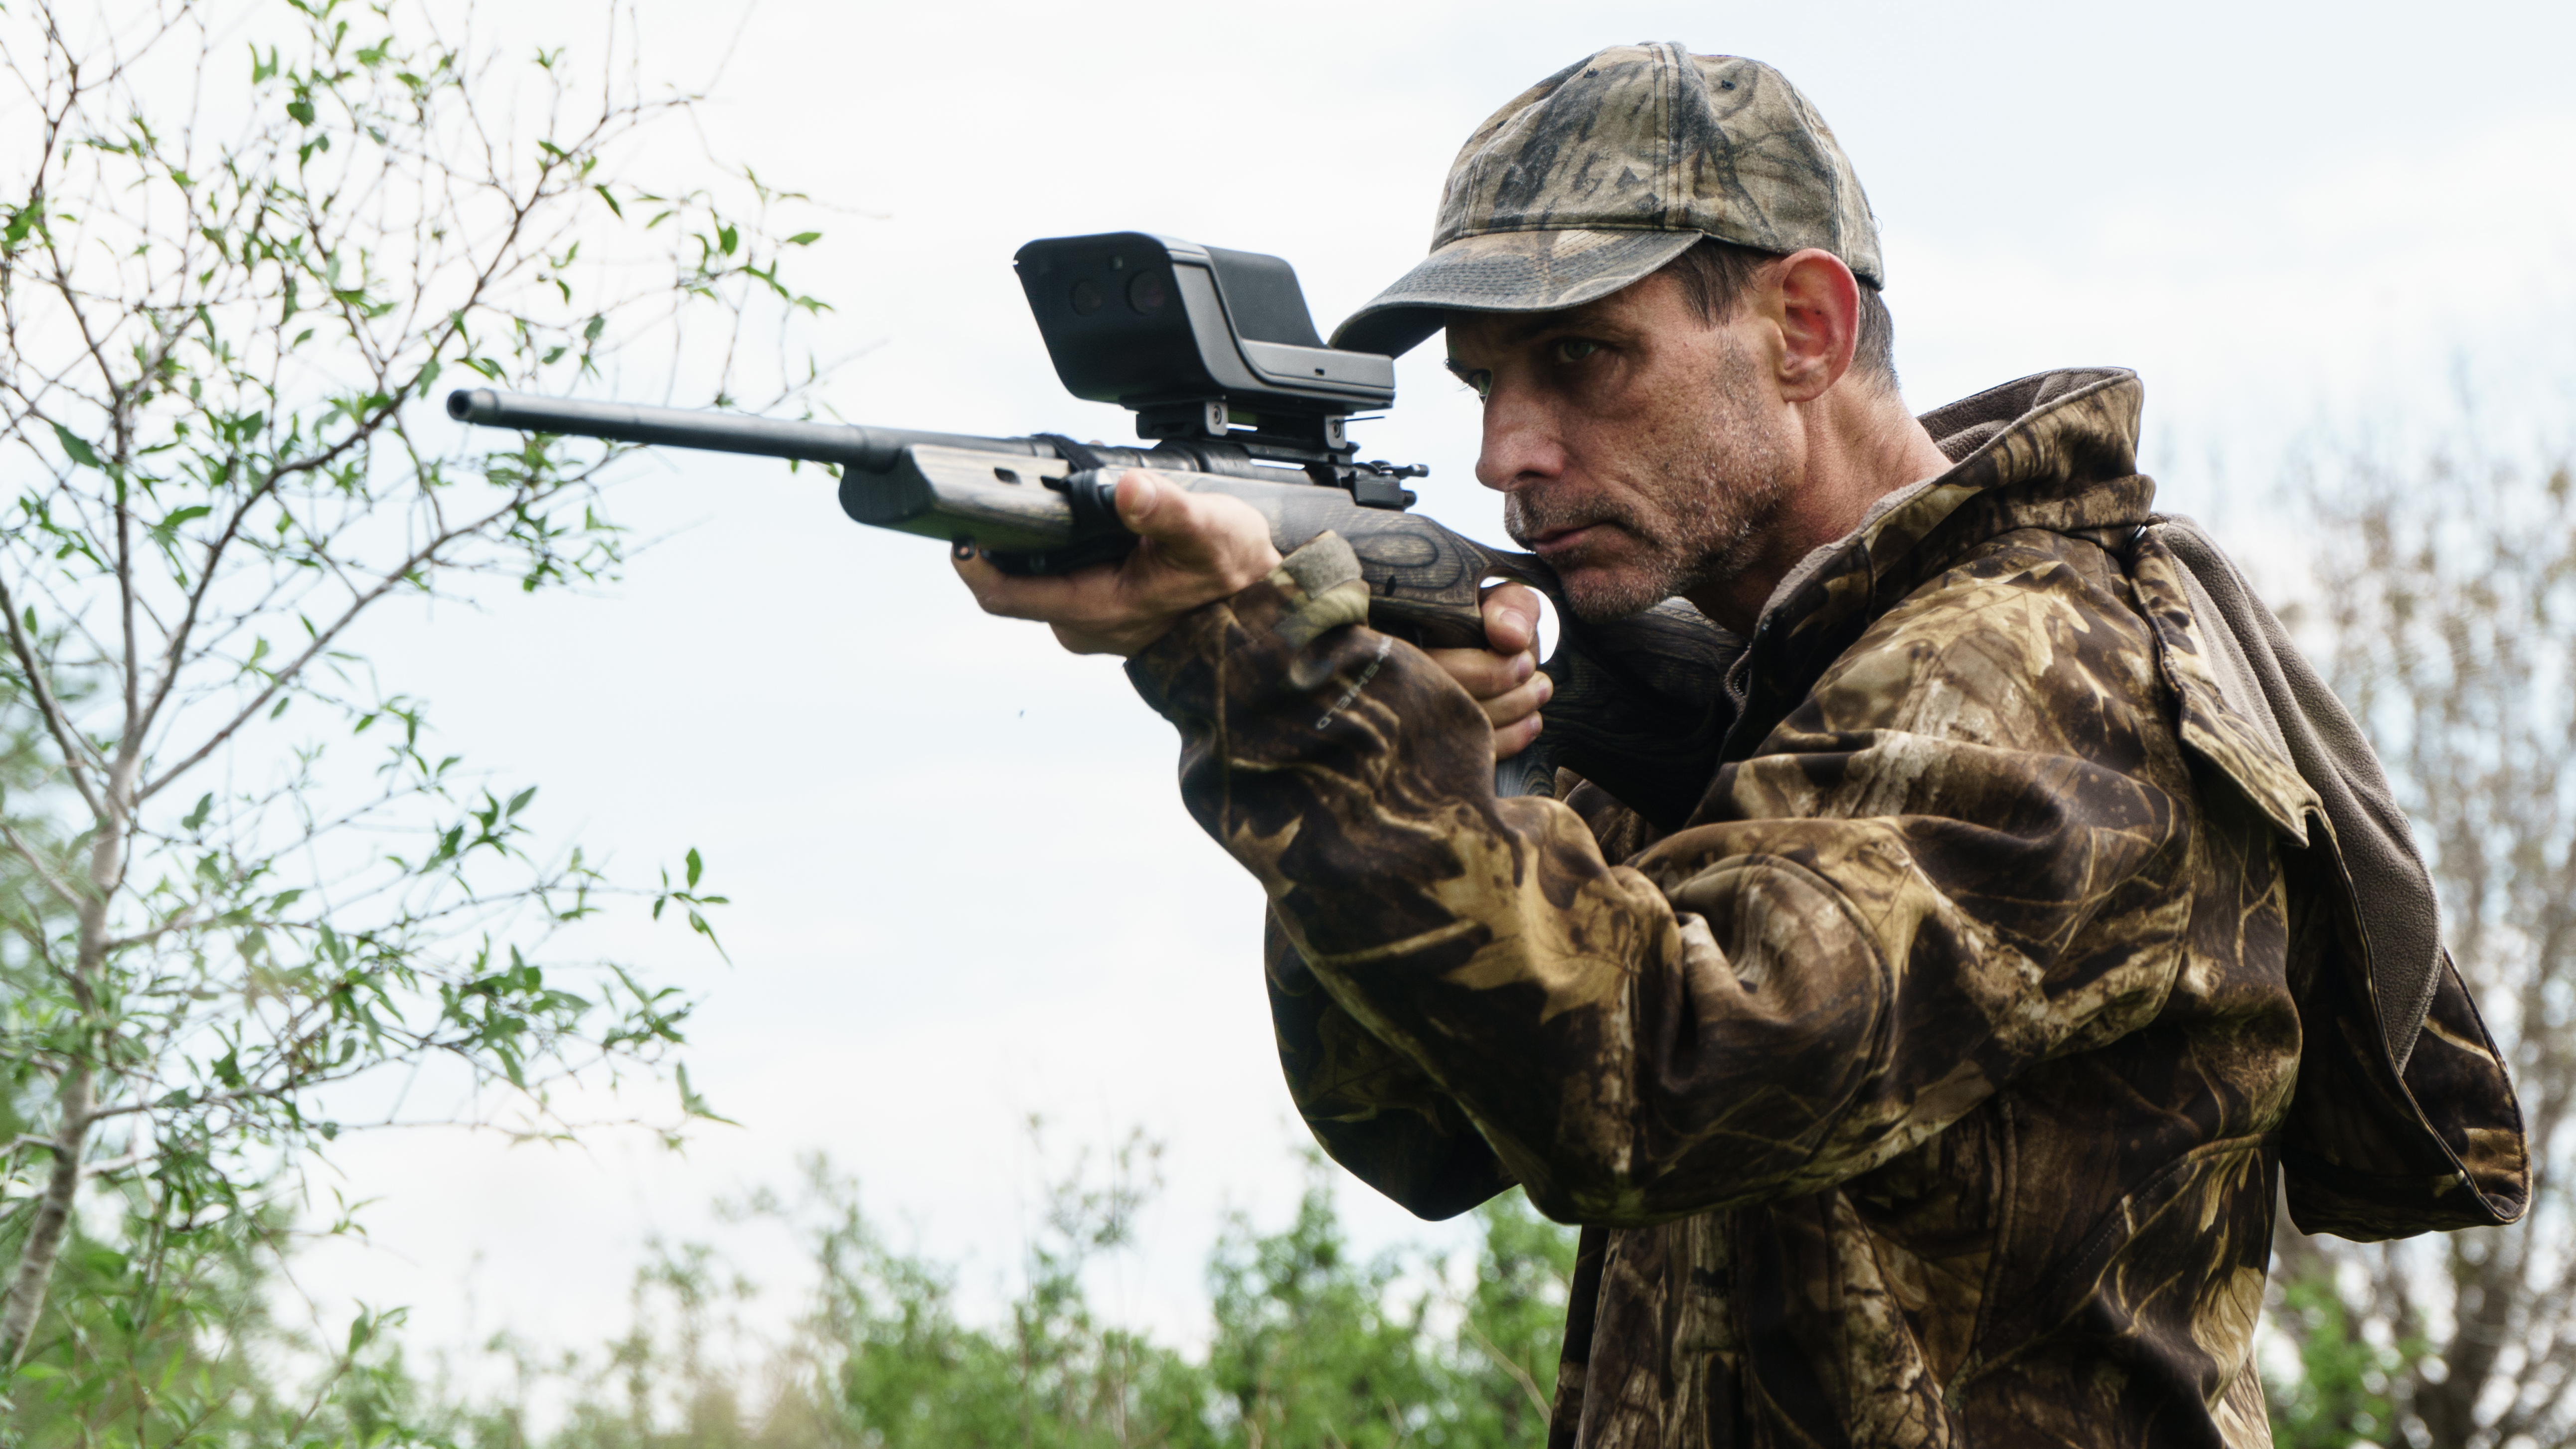 Sensight's SSR400 can be mounted to any rifle with a Weaver or Picatinny rail.